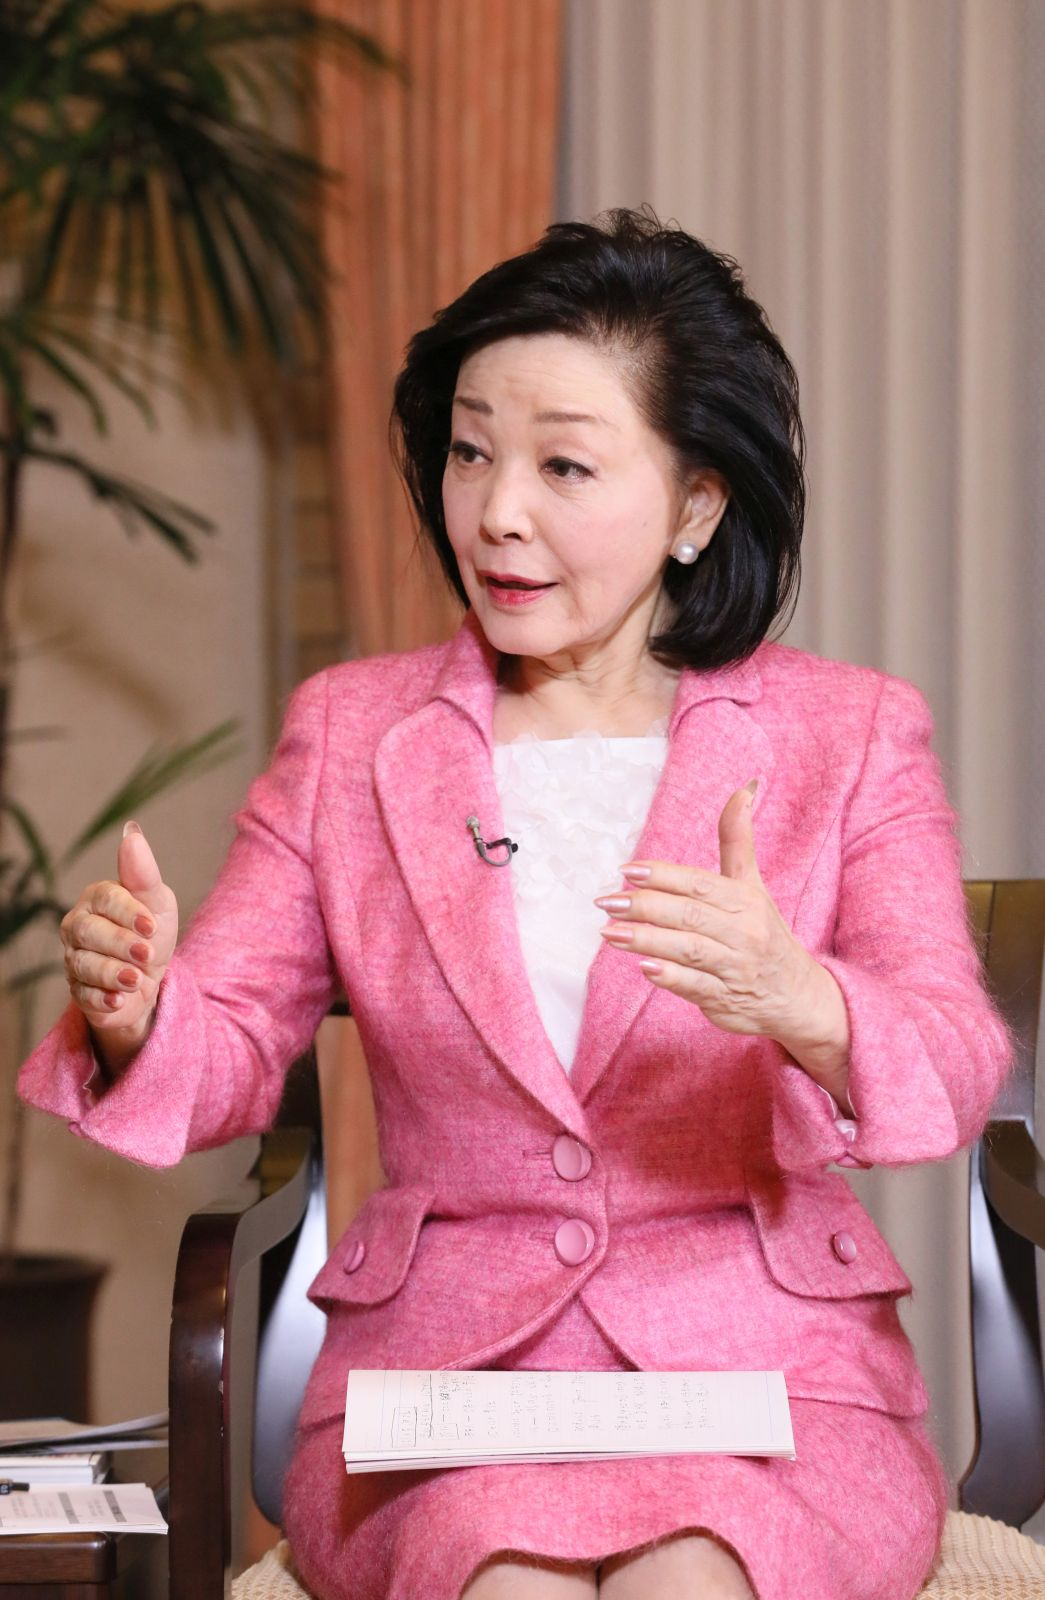 DIALOGUE   Prime Minister Shinzo Abe, Violinist Ryu Goto Find Common Resolve to End Abduction Issue